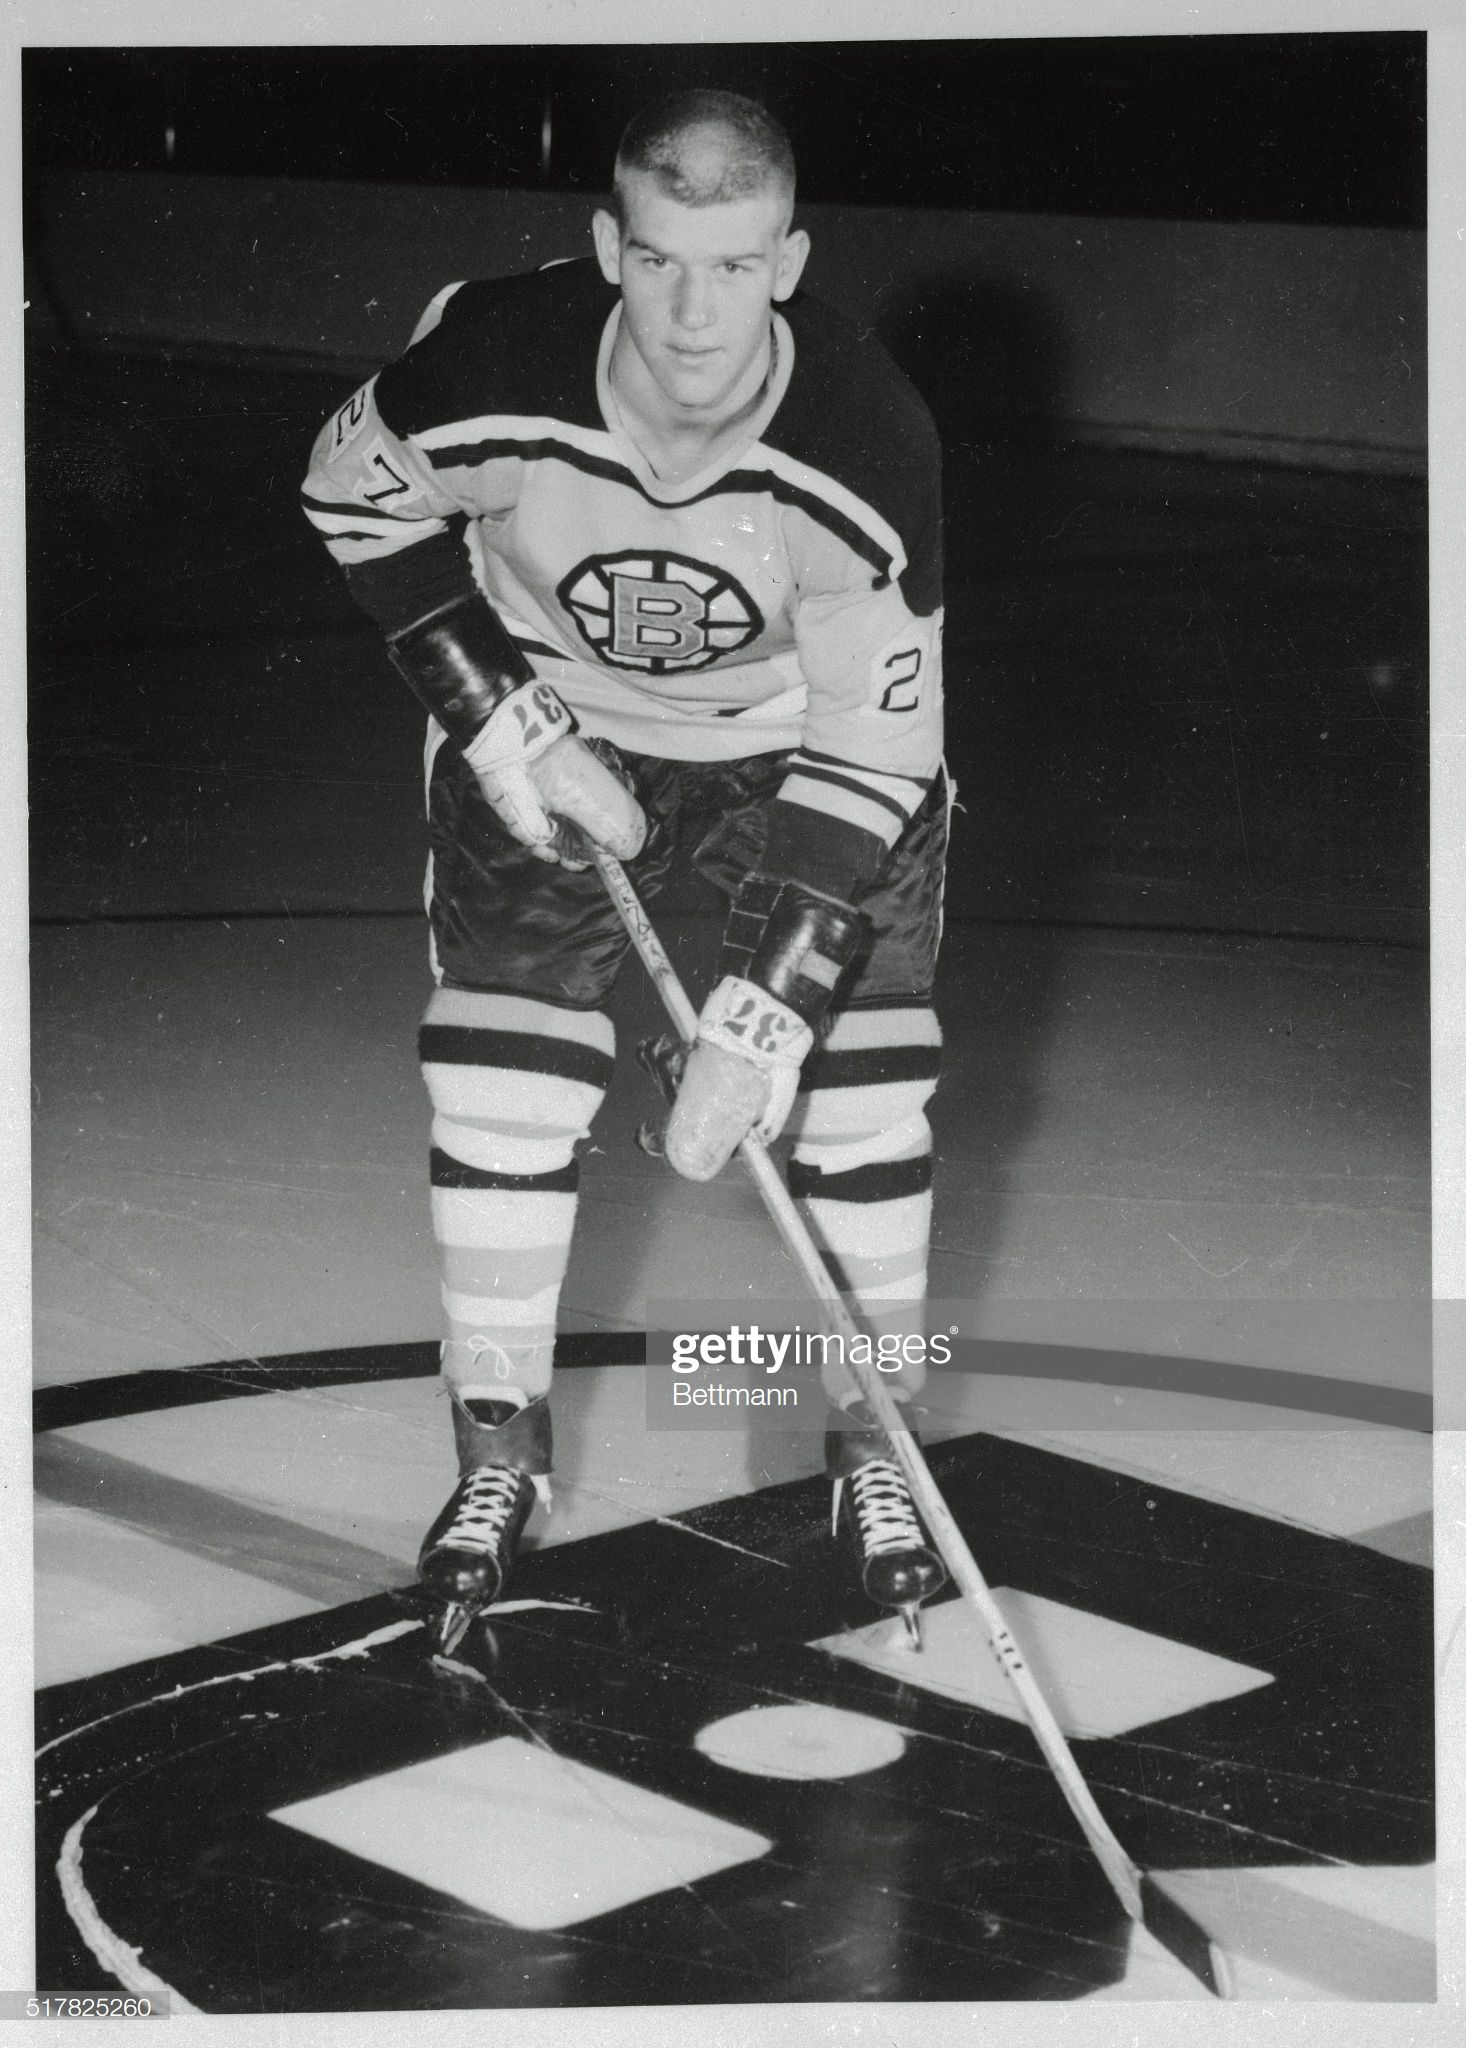 big sale f73c8 39549 1966 (Original Caption) This photo shows Bobby Orr, hockey ...